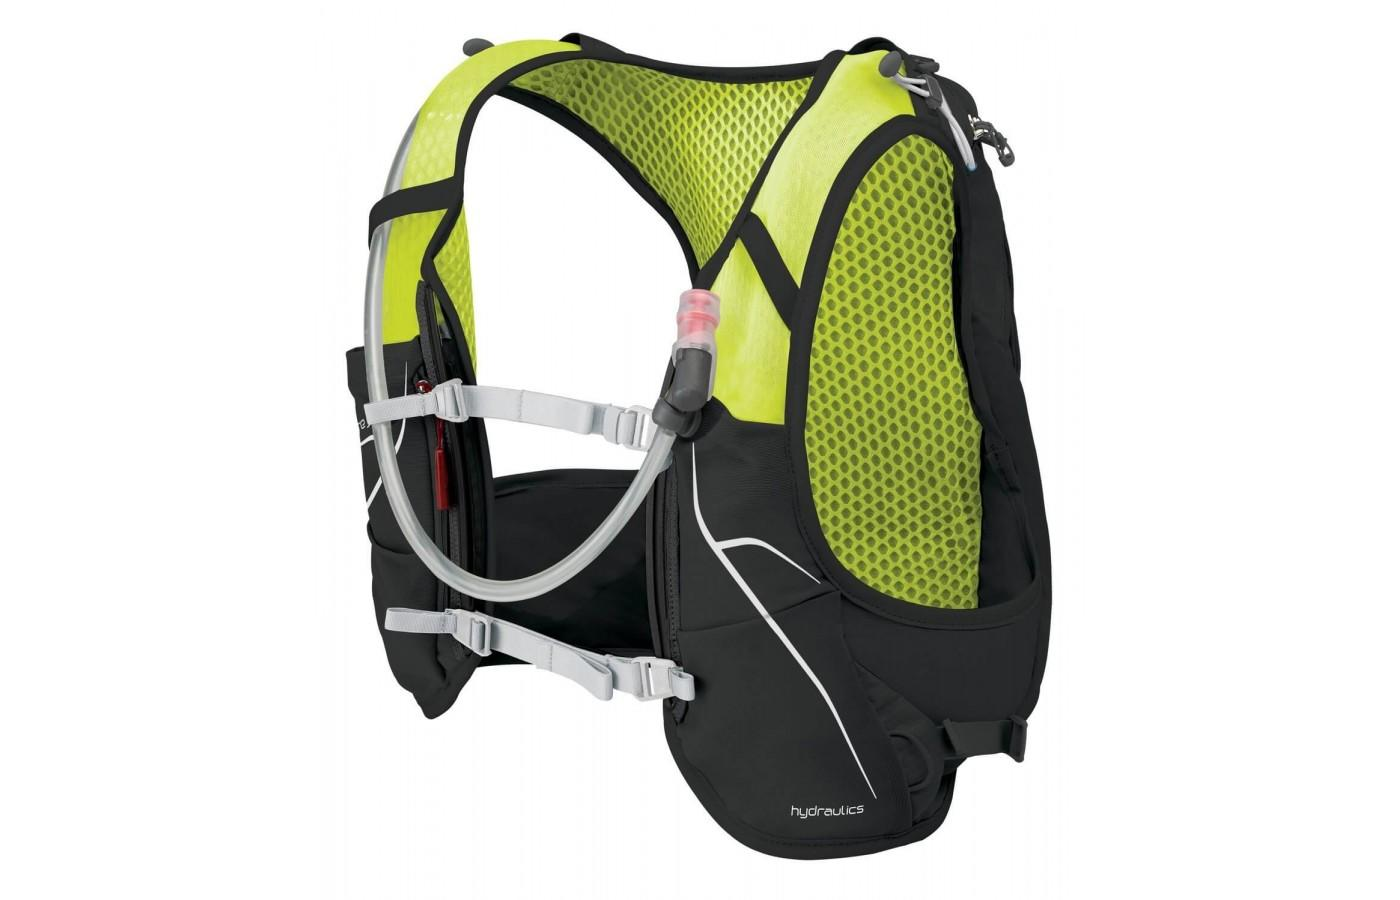 f8bc2d862839 This vest comes with a 1.5 liter hydration reservoir.